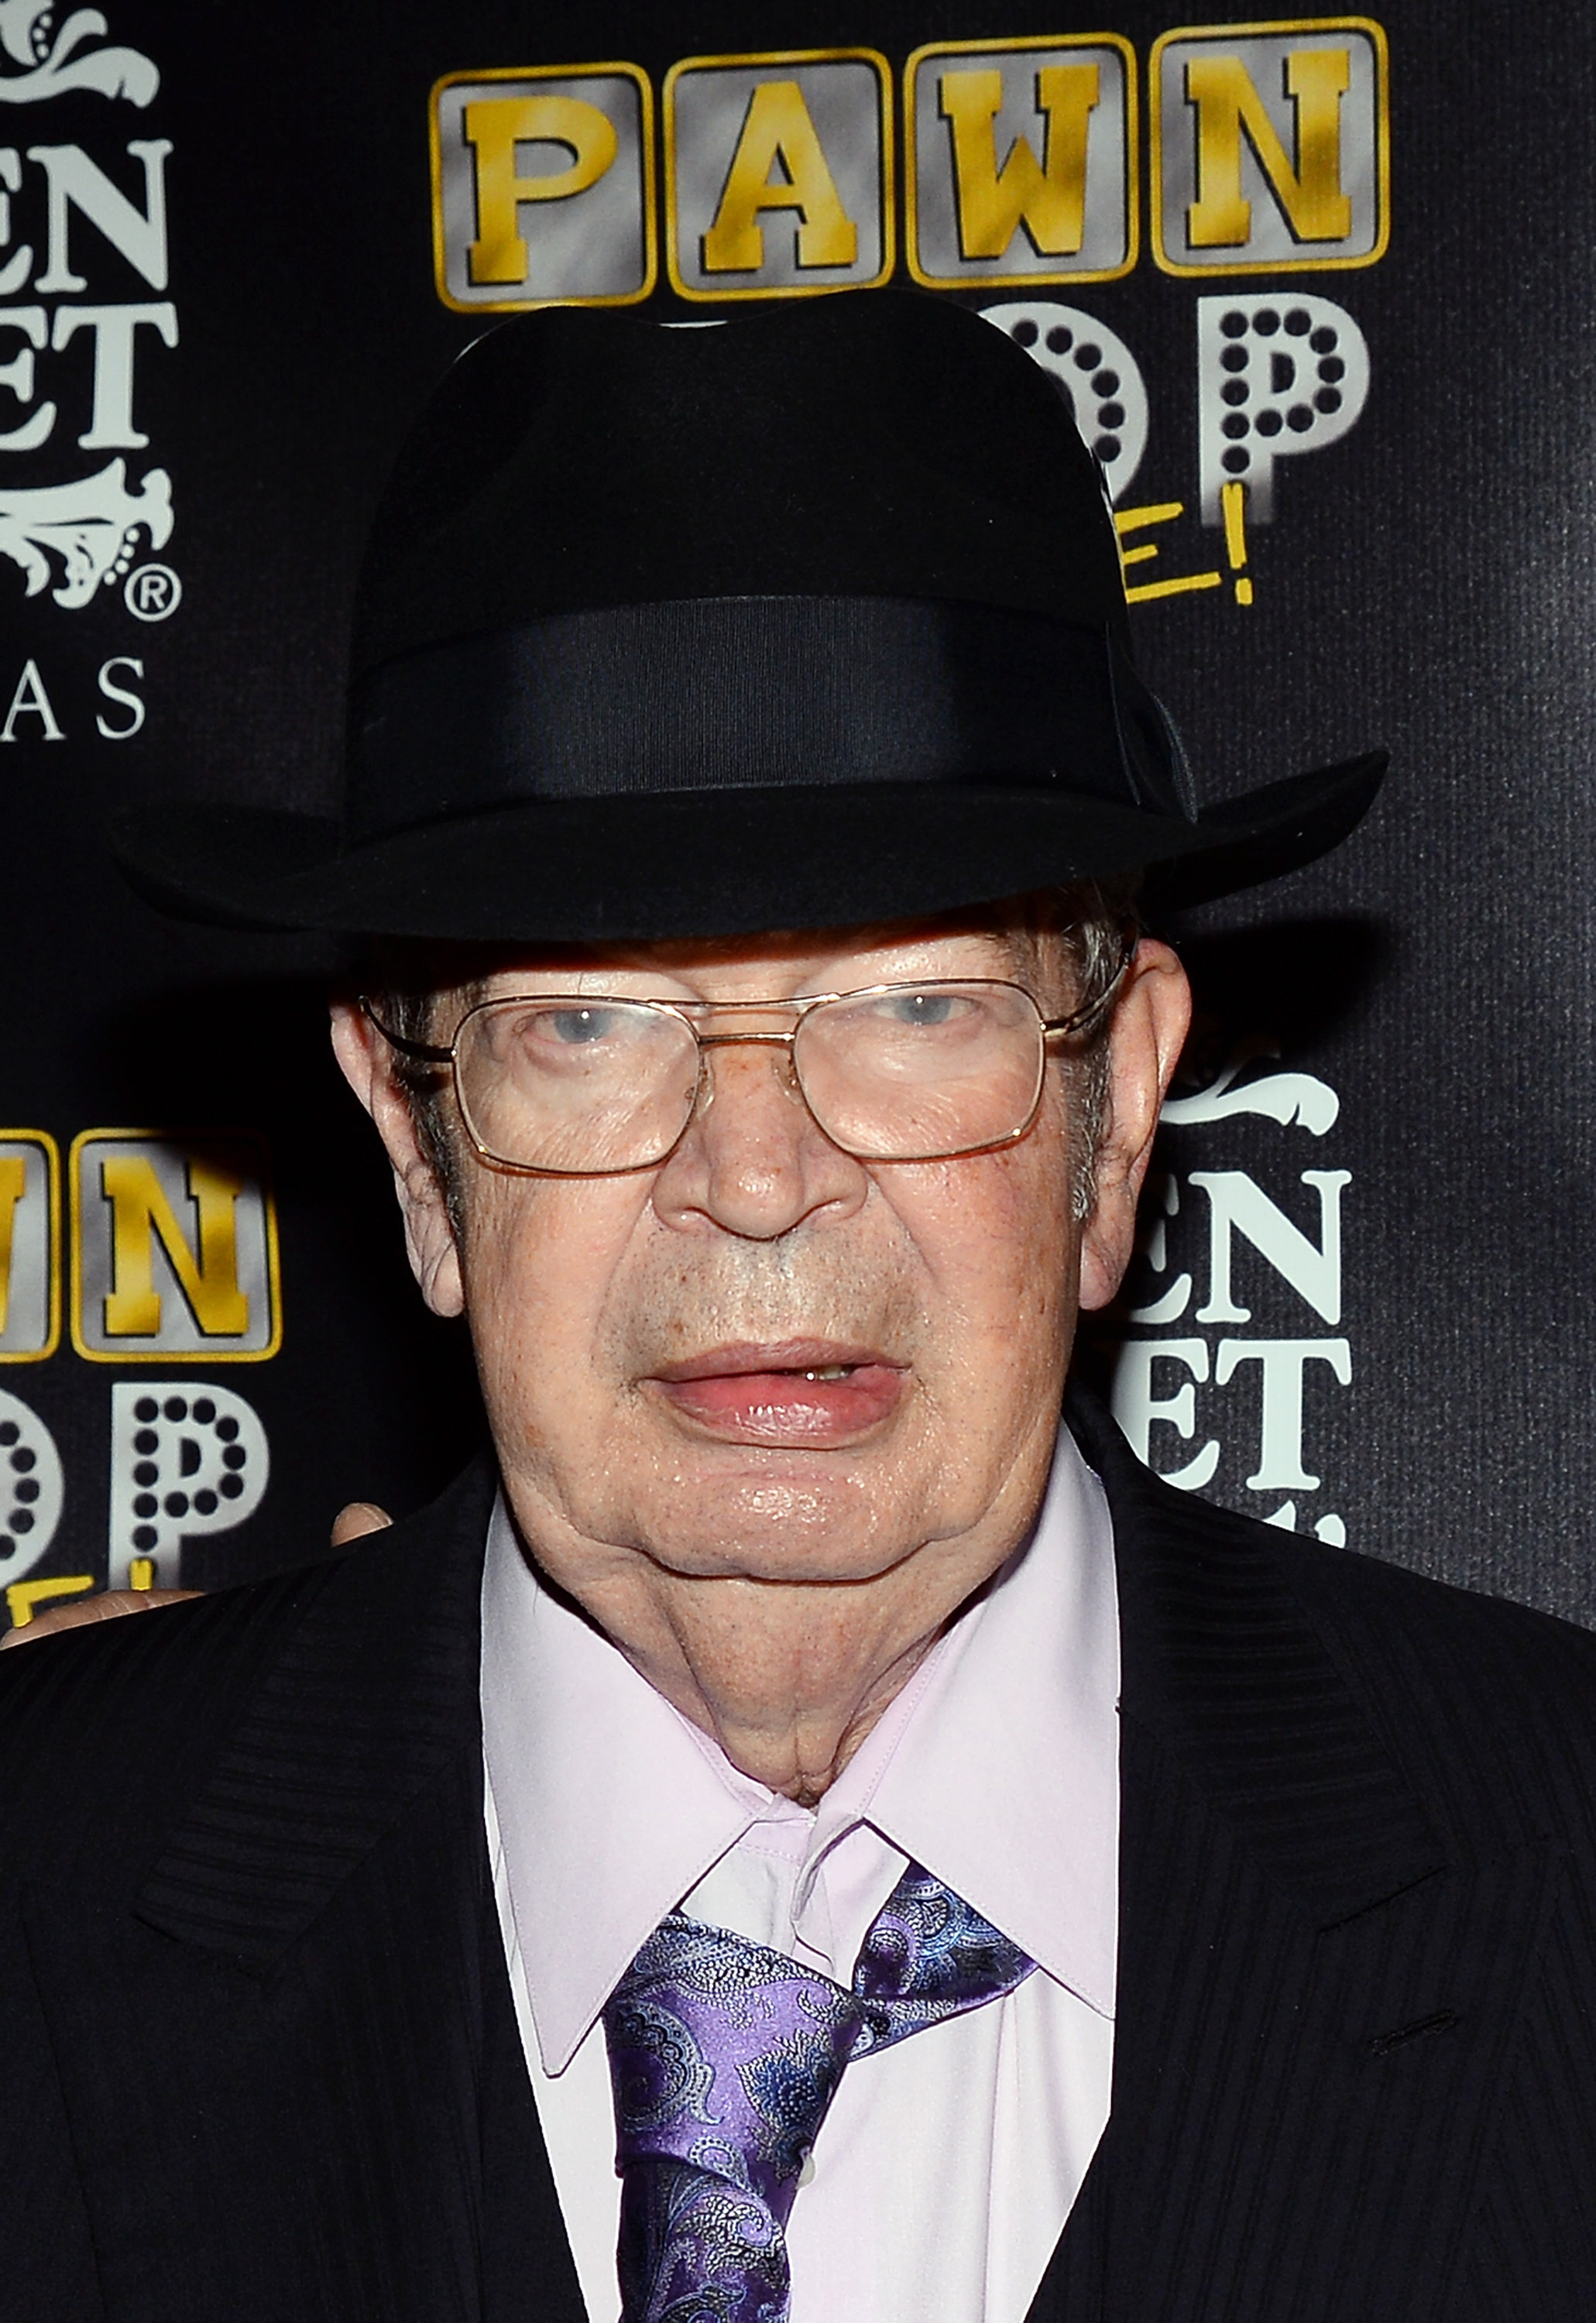 Richard 'The Old Man' Harrison arrives at the opening of 'Pawn Shop Live!,' a parody of History's 'Pawn Stars' television series, at the Golden Nugget Hotel & Casino on January 30, 2014 in Las Vegas, Nevada.